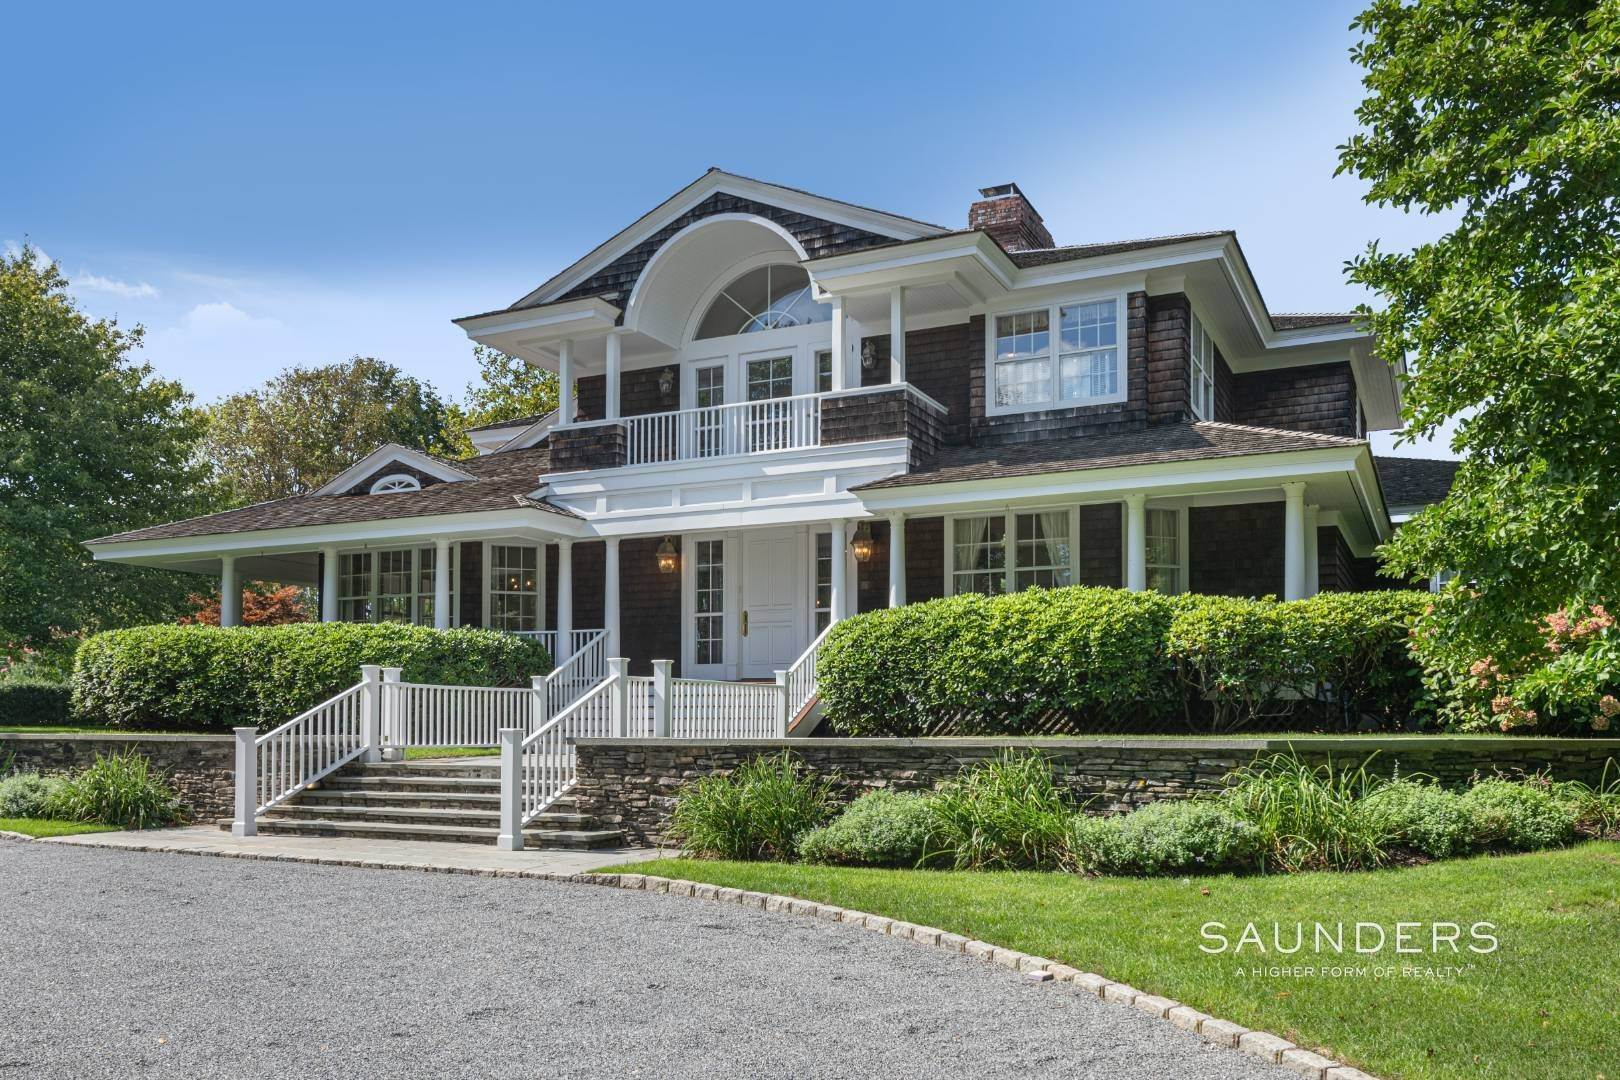 2. Single Family Homes for Sale at Classic Elegance In The Heart Of Quogue Village 68 Quogue Street, Quogue Village, Southampton Town, NY 11959